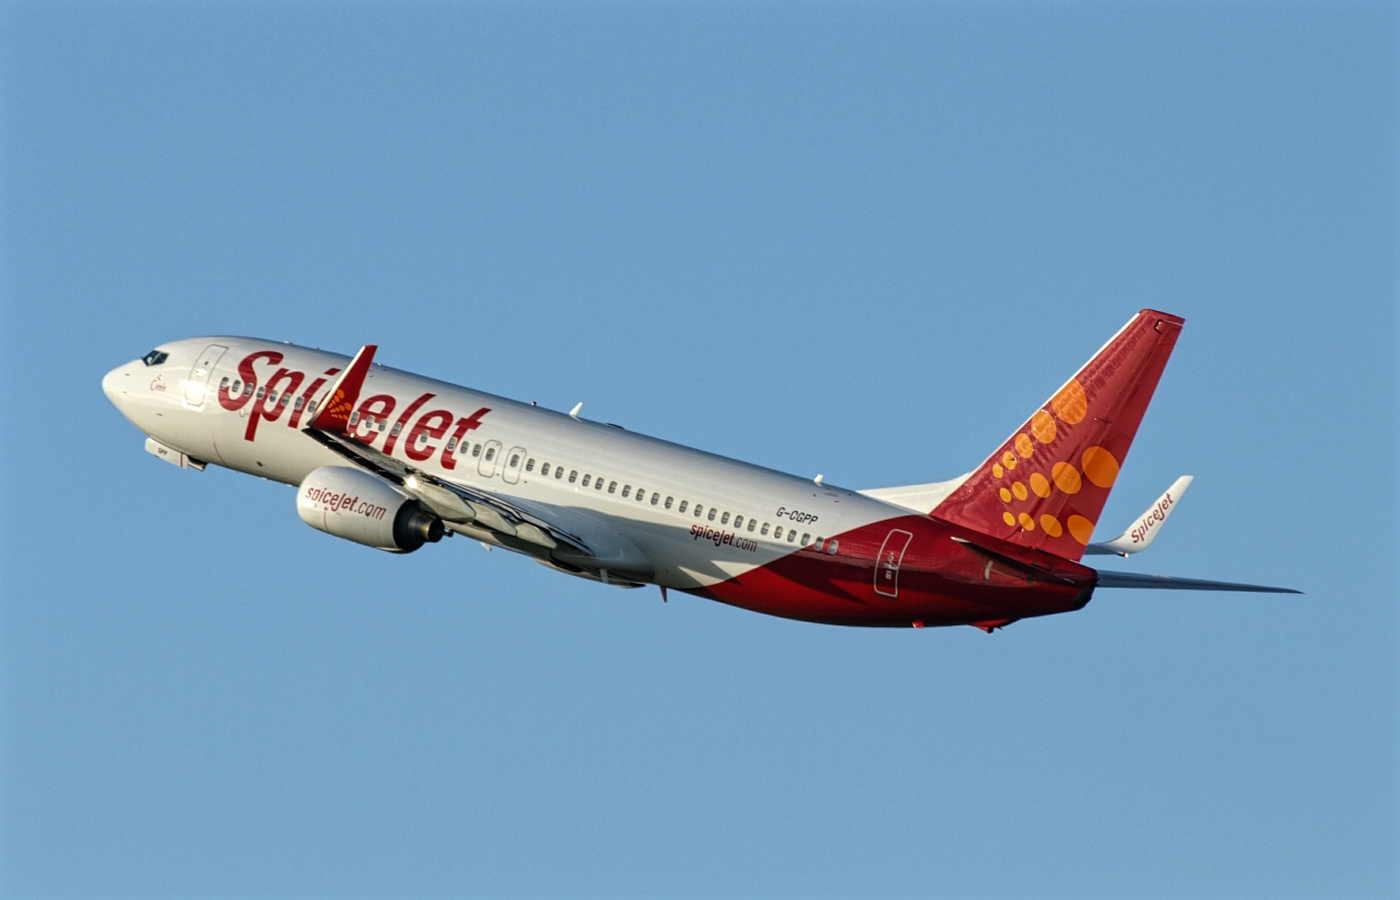 SpiceJet Boeing 737-800 While Climbing The Sky